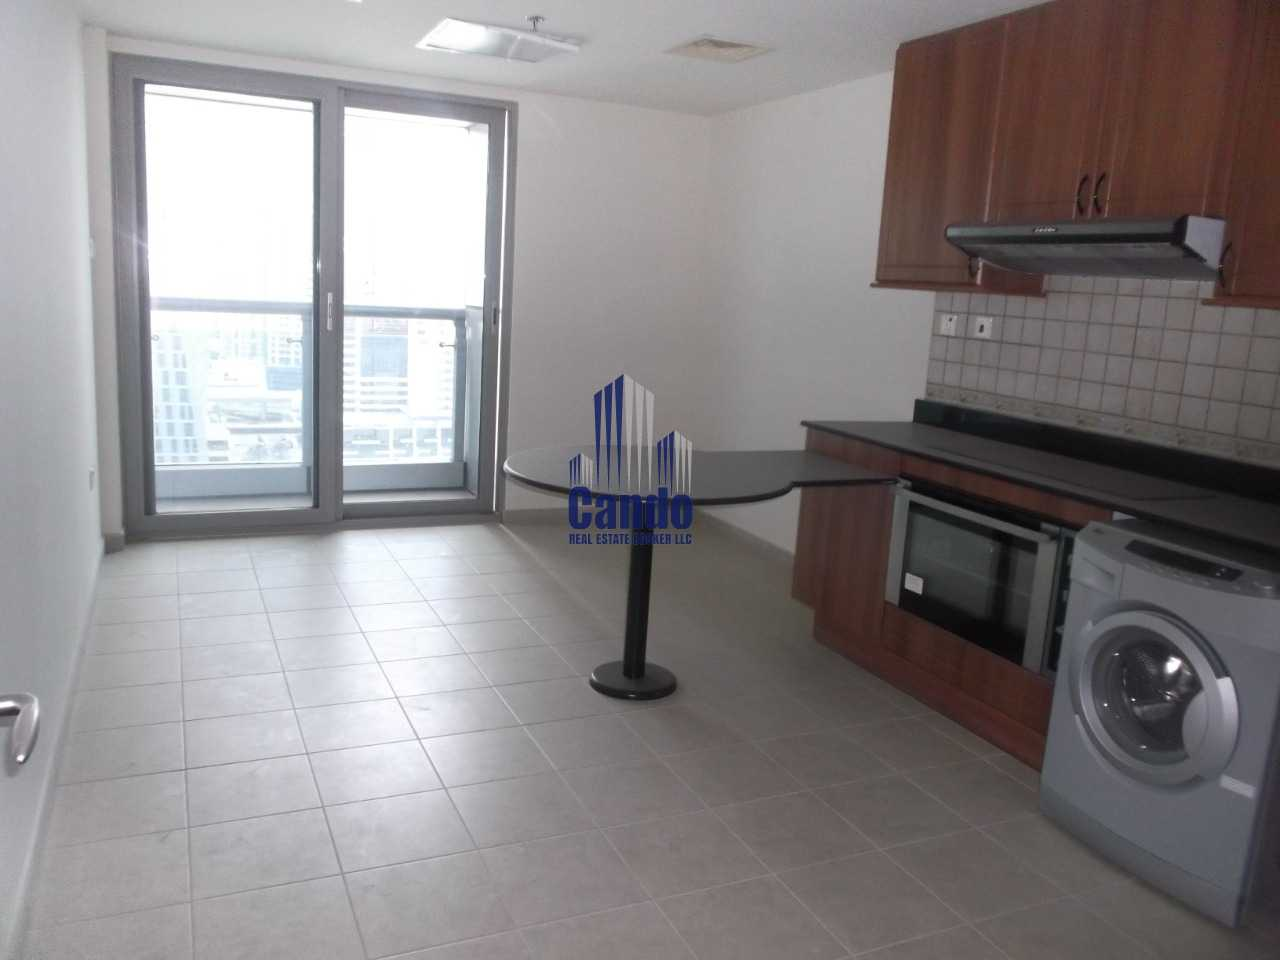 2 BEDROOM FOR RENT PRINCESS TOWER